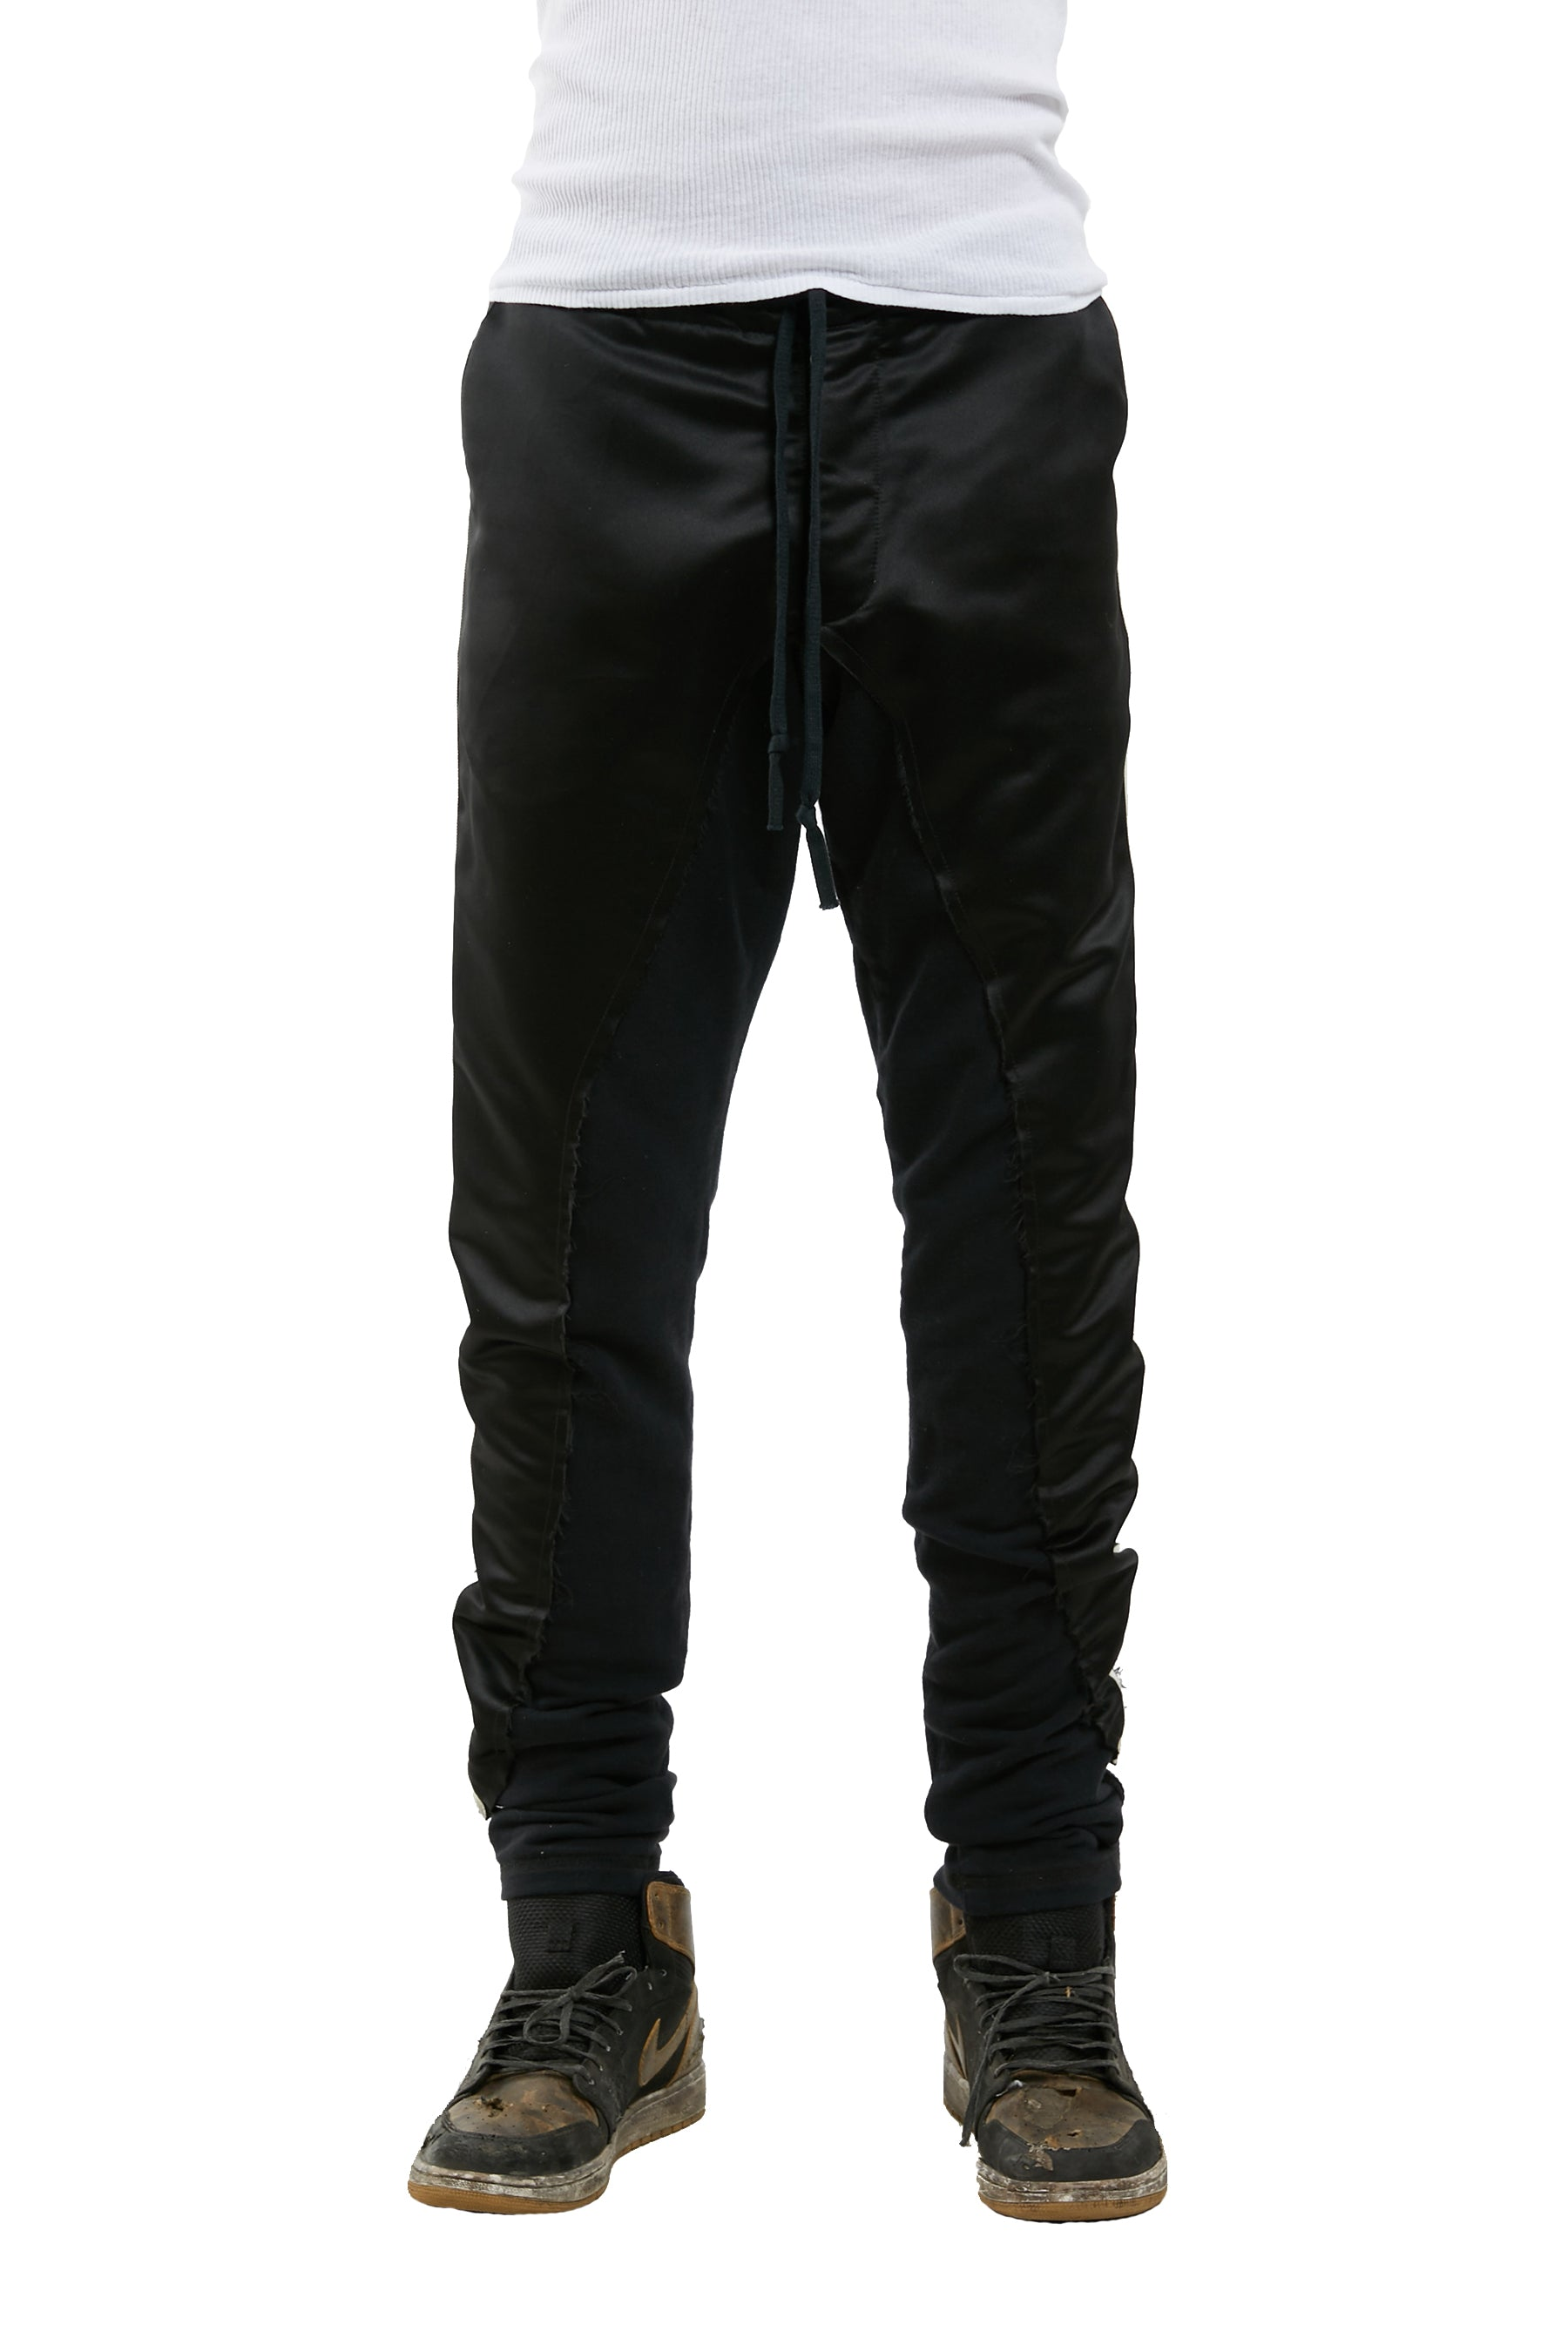 50/50 LONG SLIM (BLACK SATIN / FLEECE)